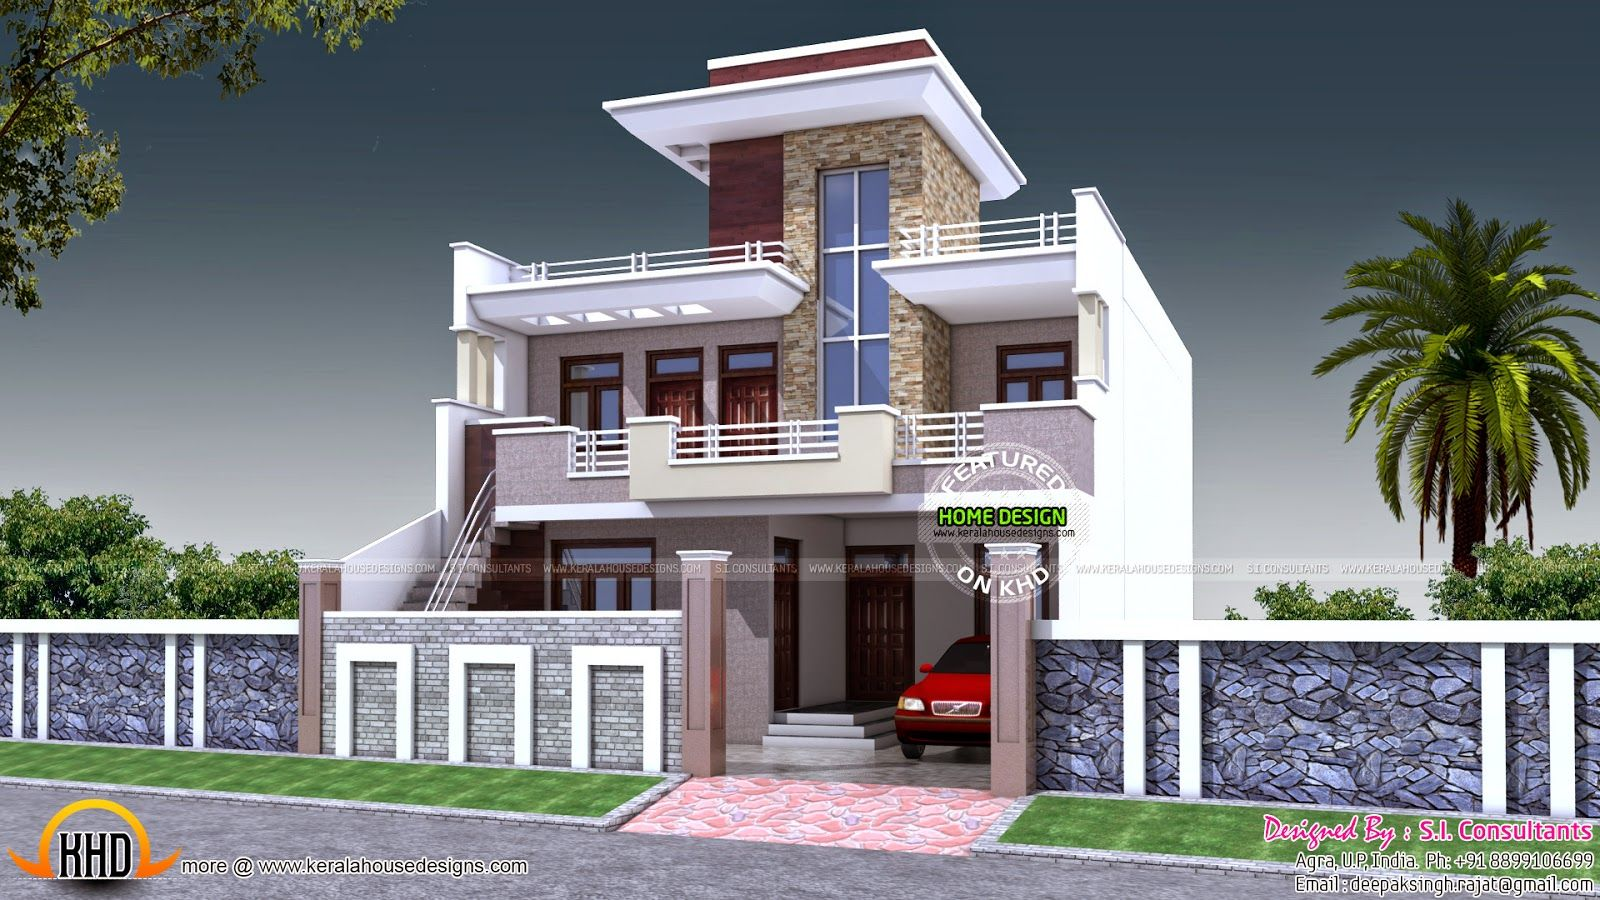 178595941453639333 on 1100 sq ft house plans and models